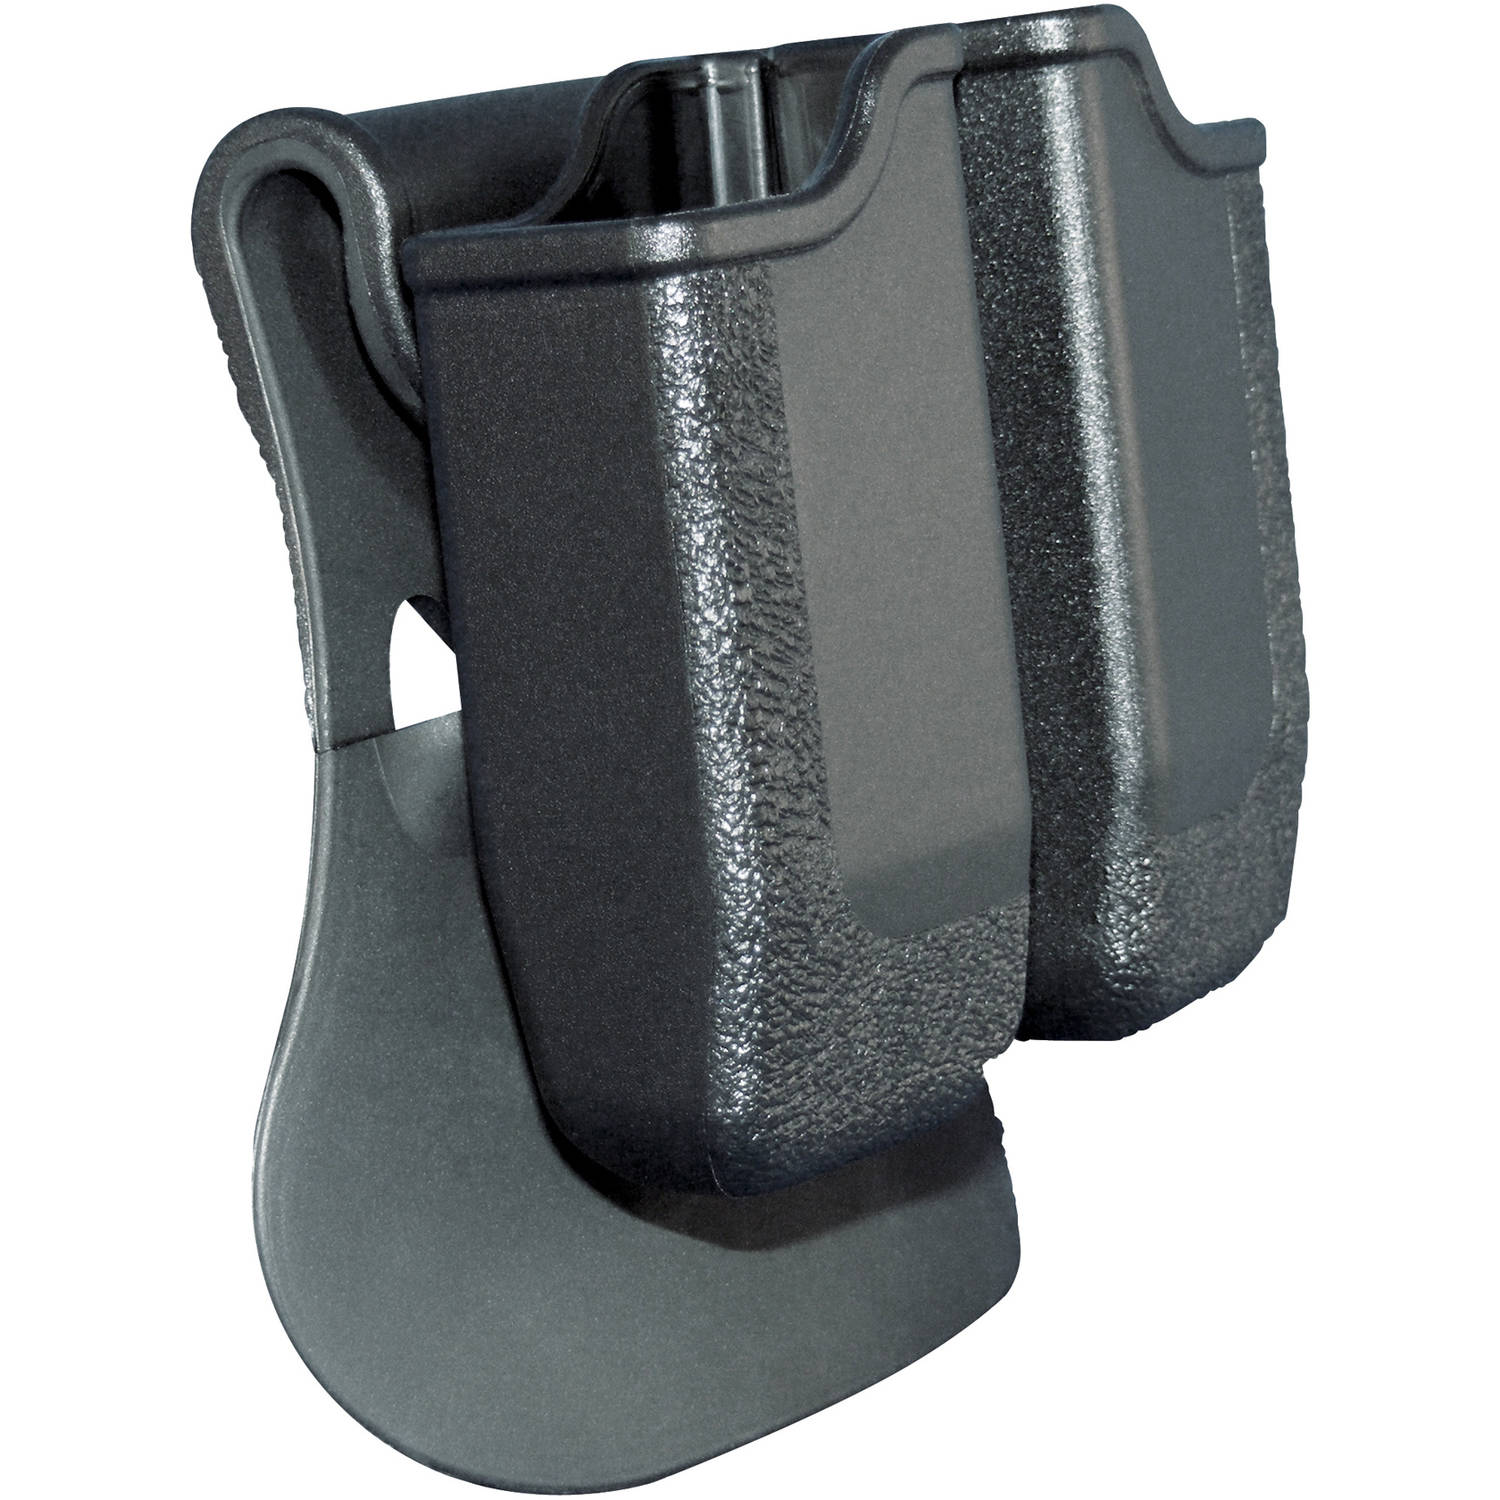 Sig Sauer Double Magazine Pouch, Fits P220 and 1911 Magazines, Black